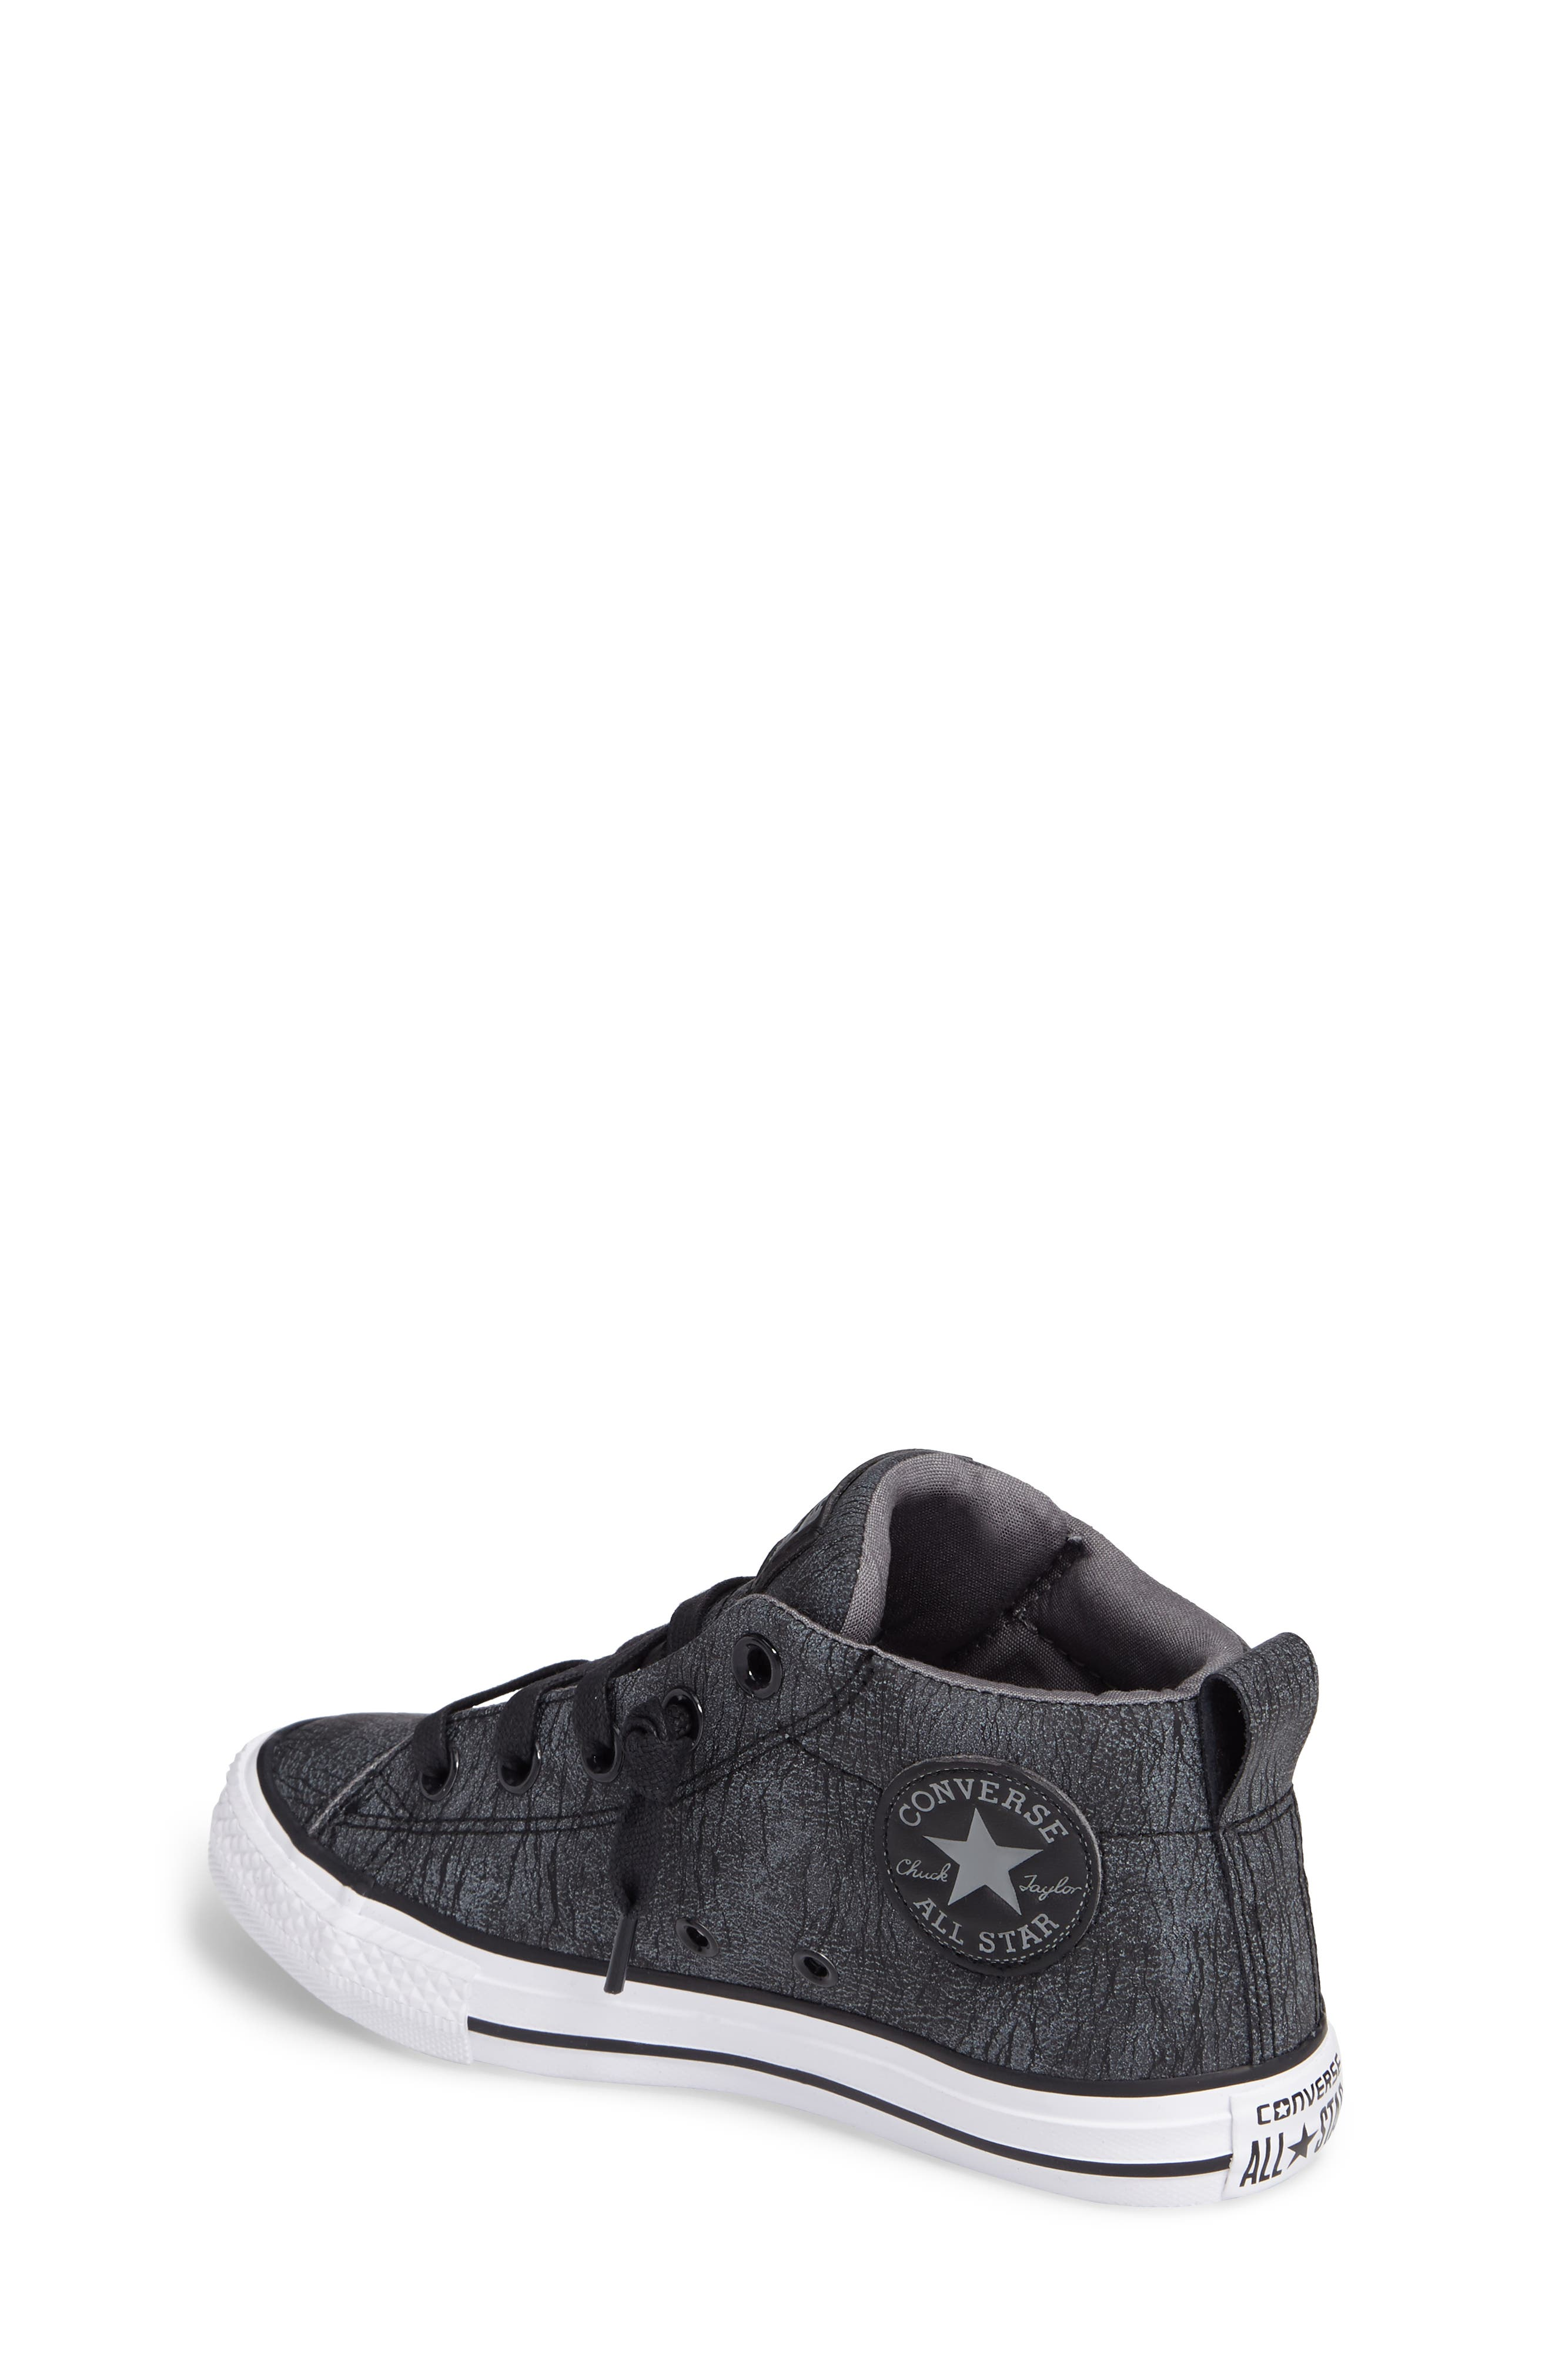 Alternate Image 2  - Converse Chuck Taylor® All Star® Street Mid Top Sneaker (Baby, Walker, Toddler, Little Kid & Big Kid)